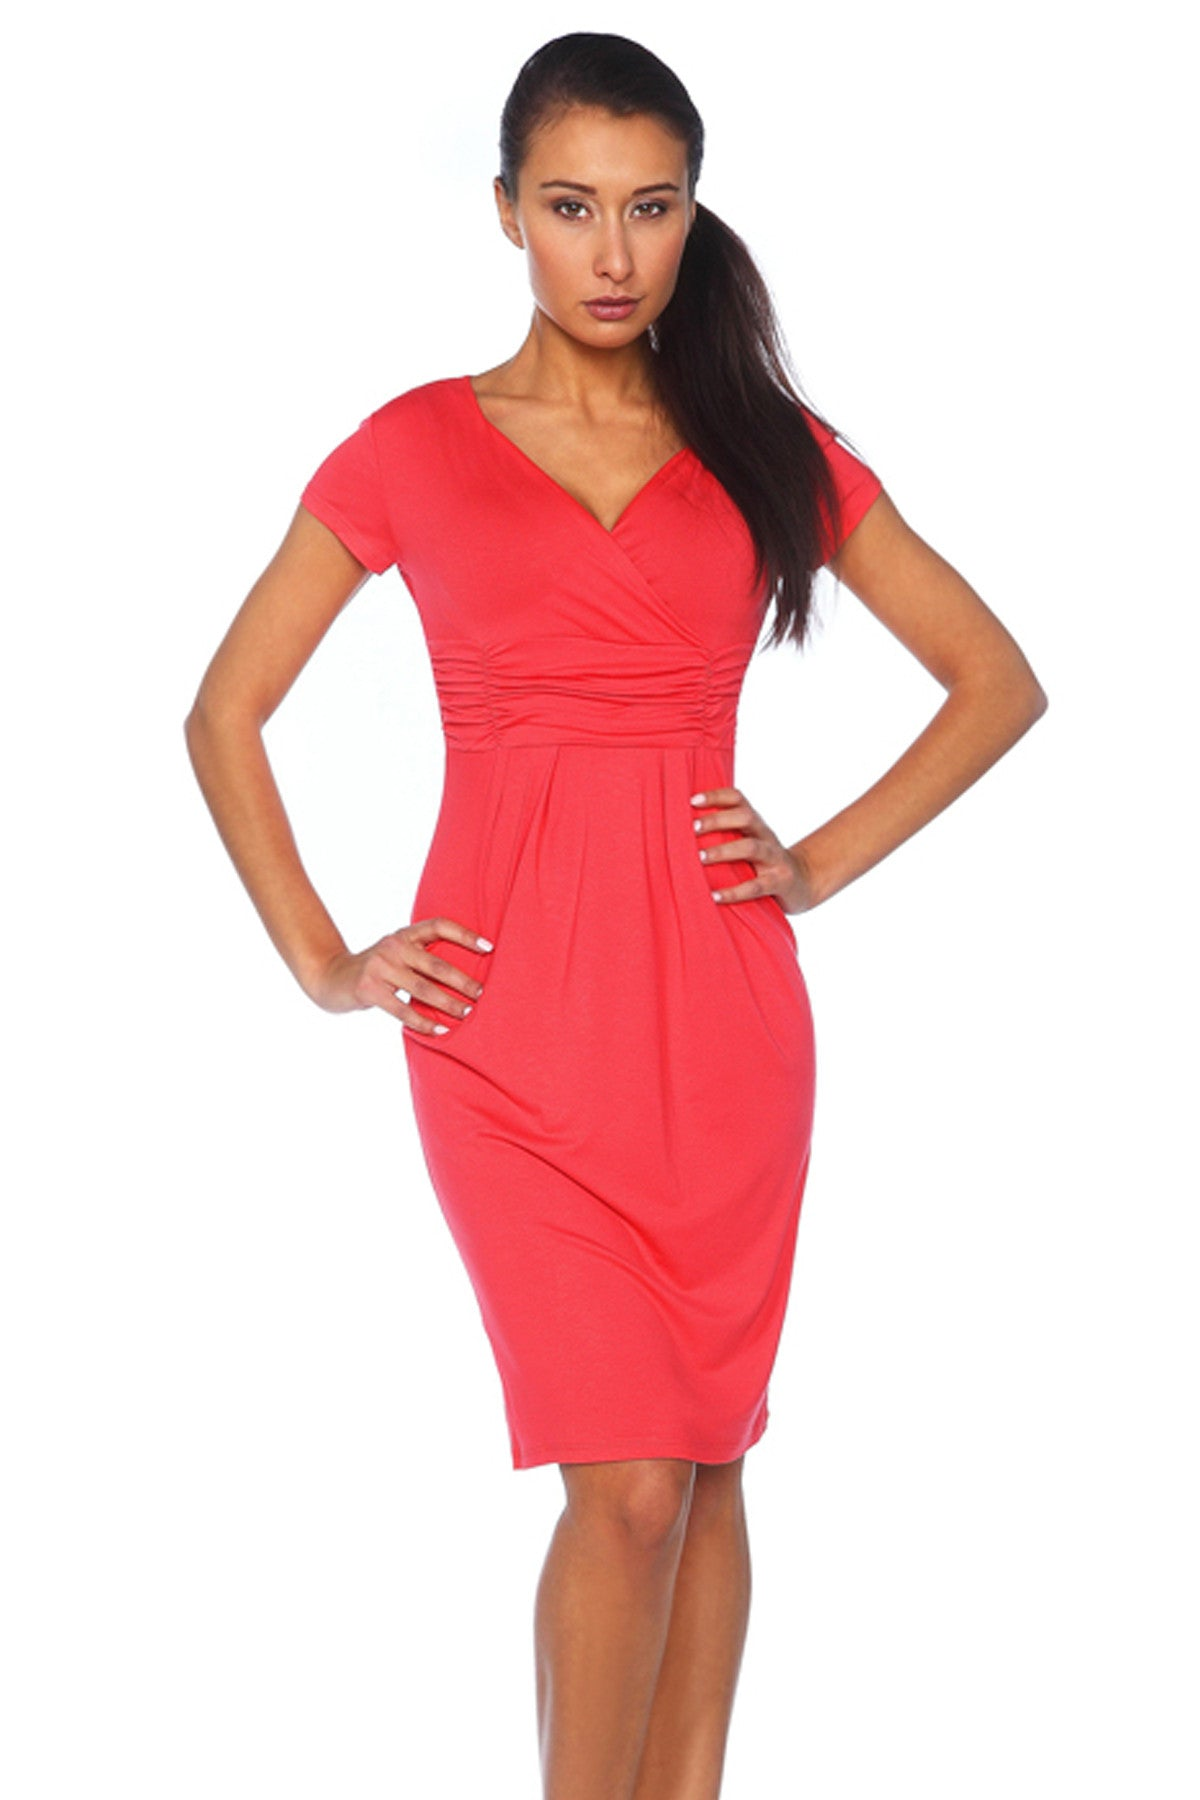 Maternity dresses short sleeve v neck summer dress juicy peach maternity dresses short sleeve v neck stretch summer office casual work dress juicy peach fashion ombrellifo Choice Image